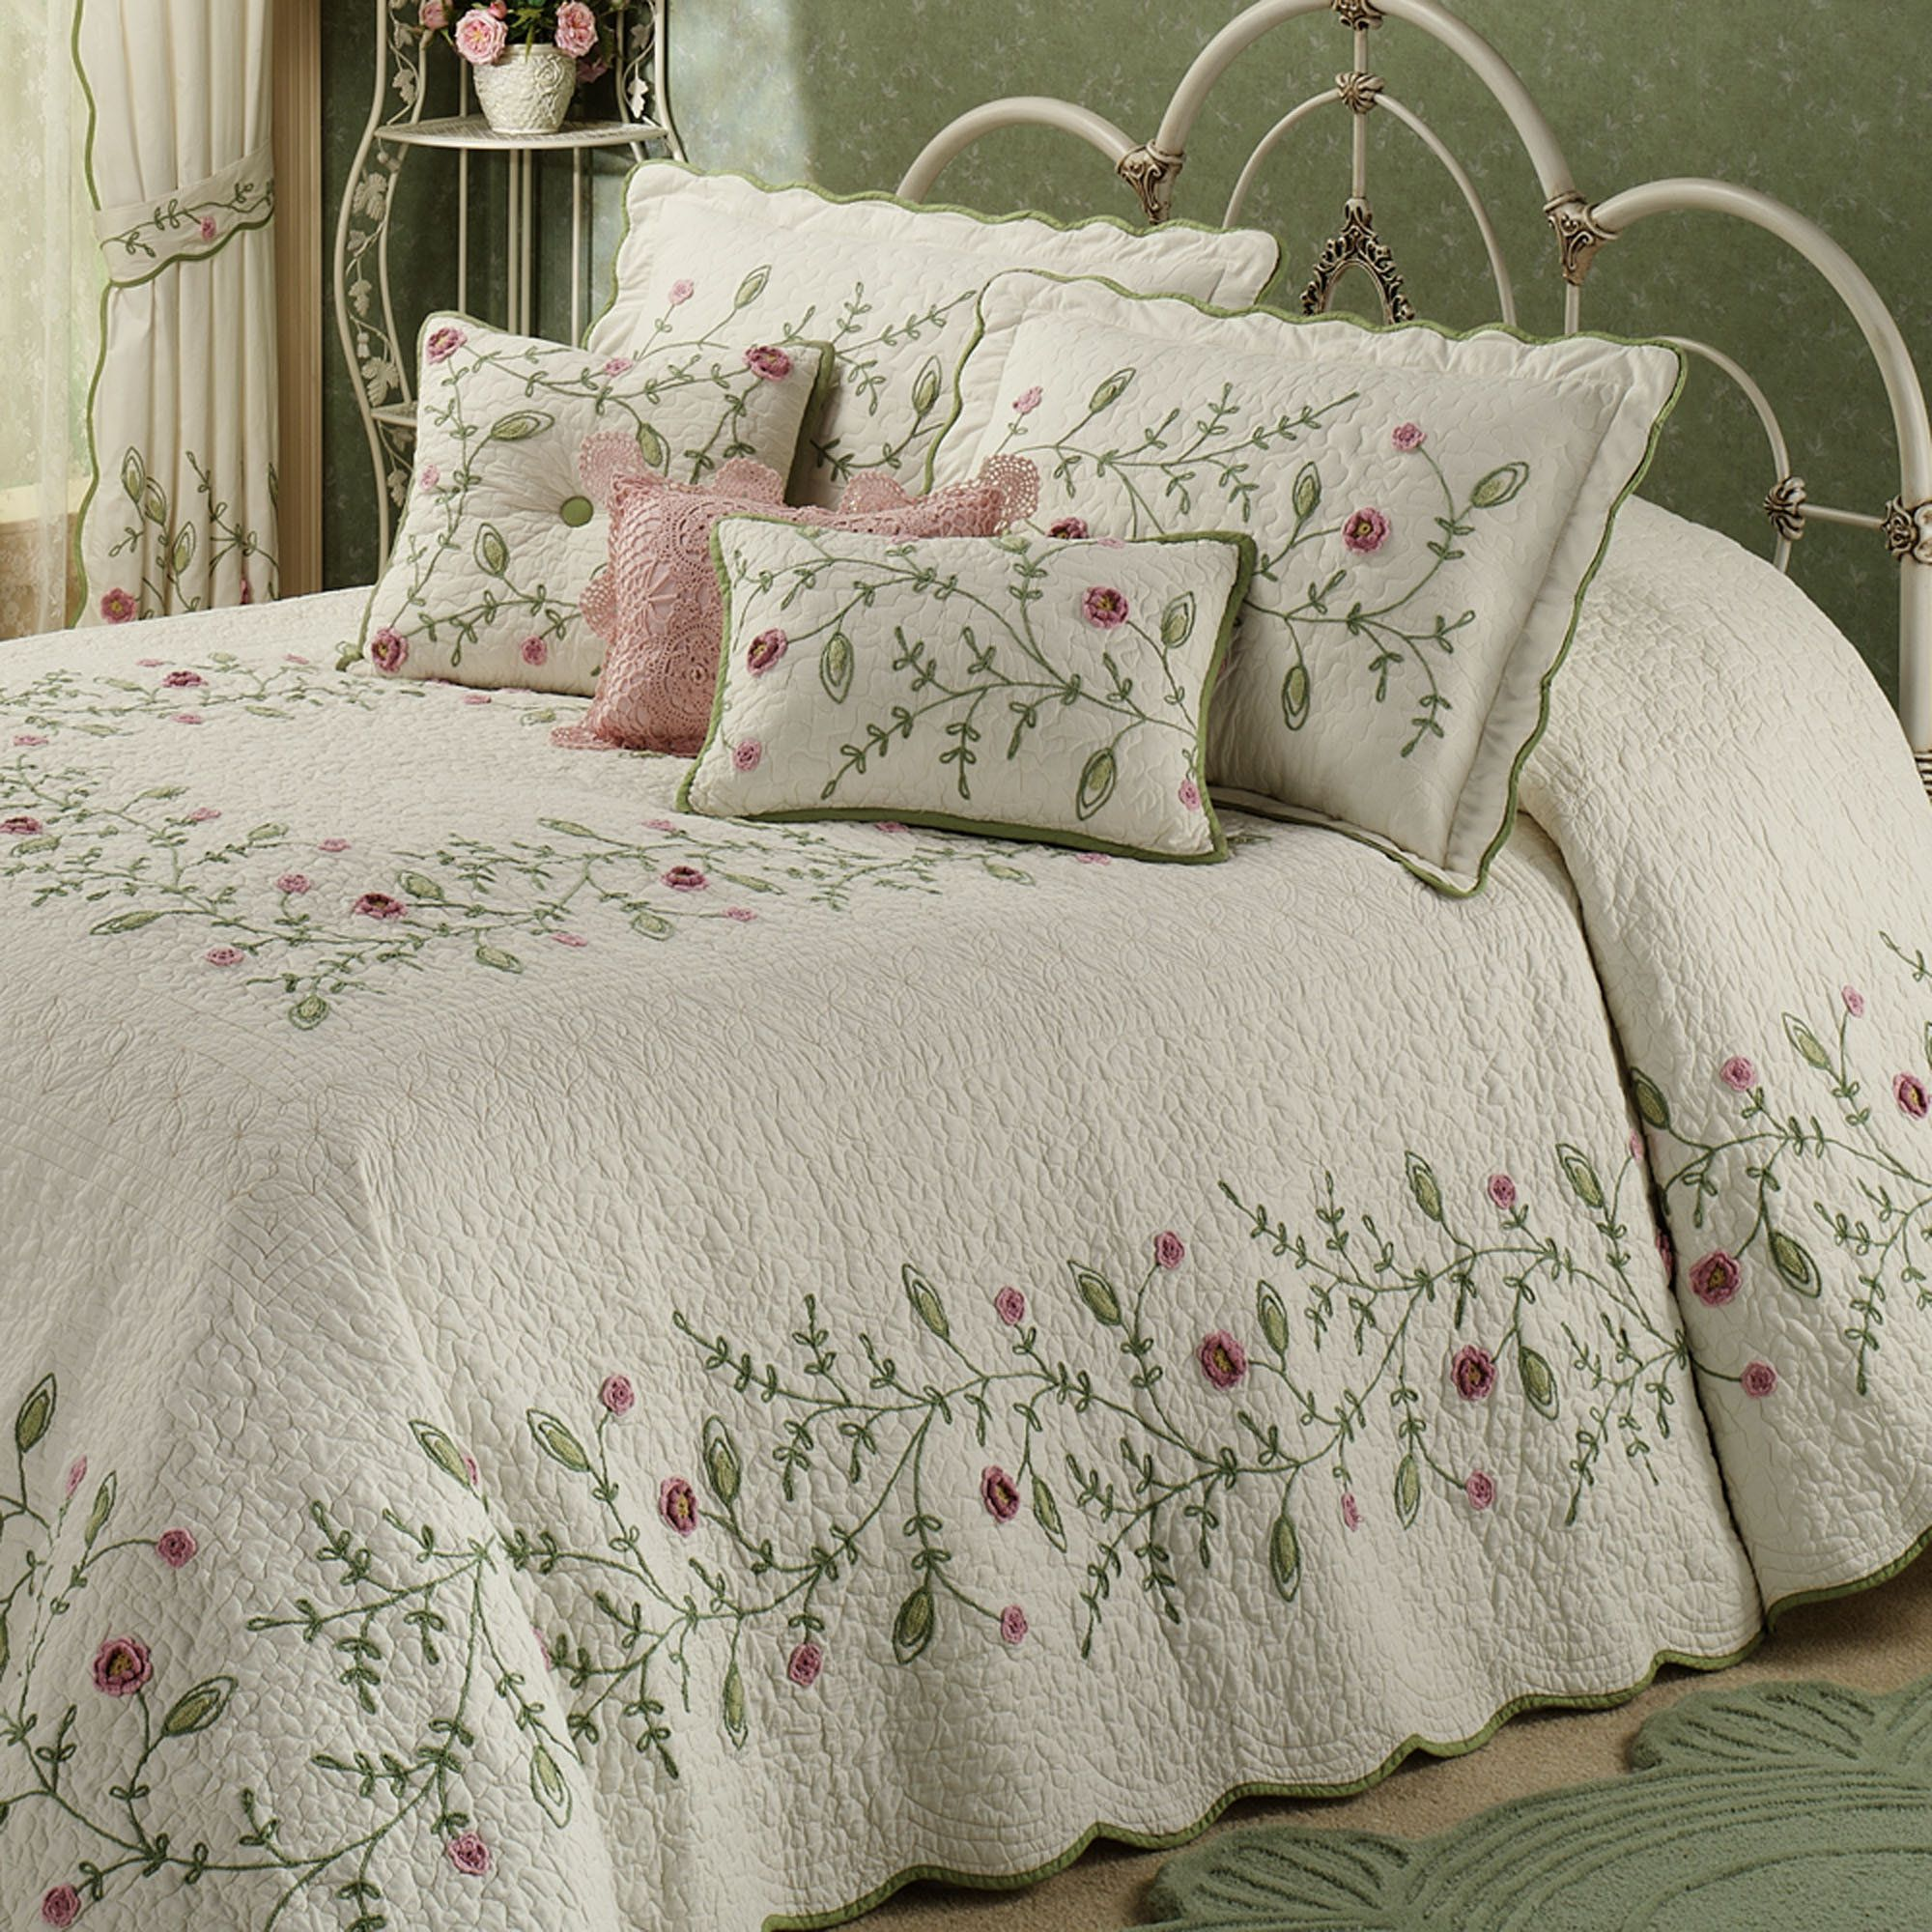 Posy Grande Bedspread Ivory Bed Linens Luxury Bed Spreads Chic Bedding Sets